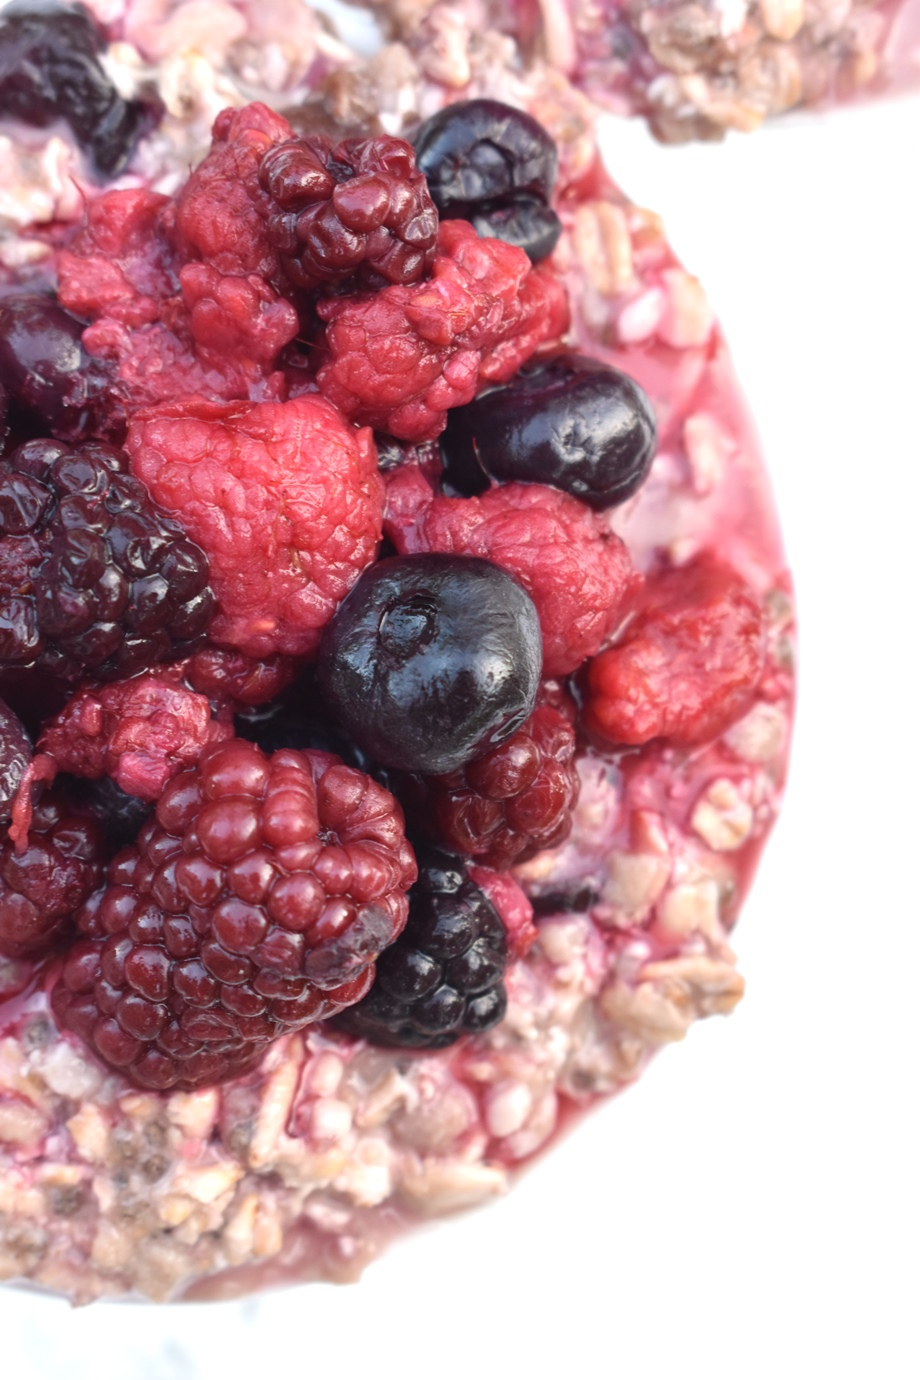 Bowl of oatmeal topped with berries